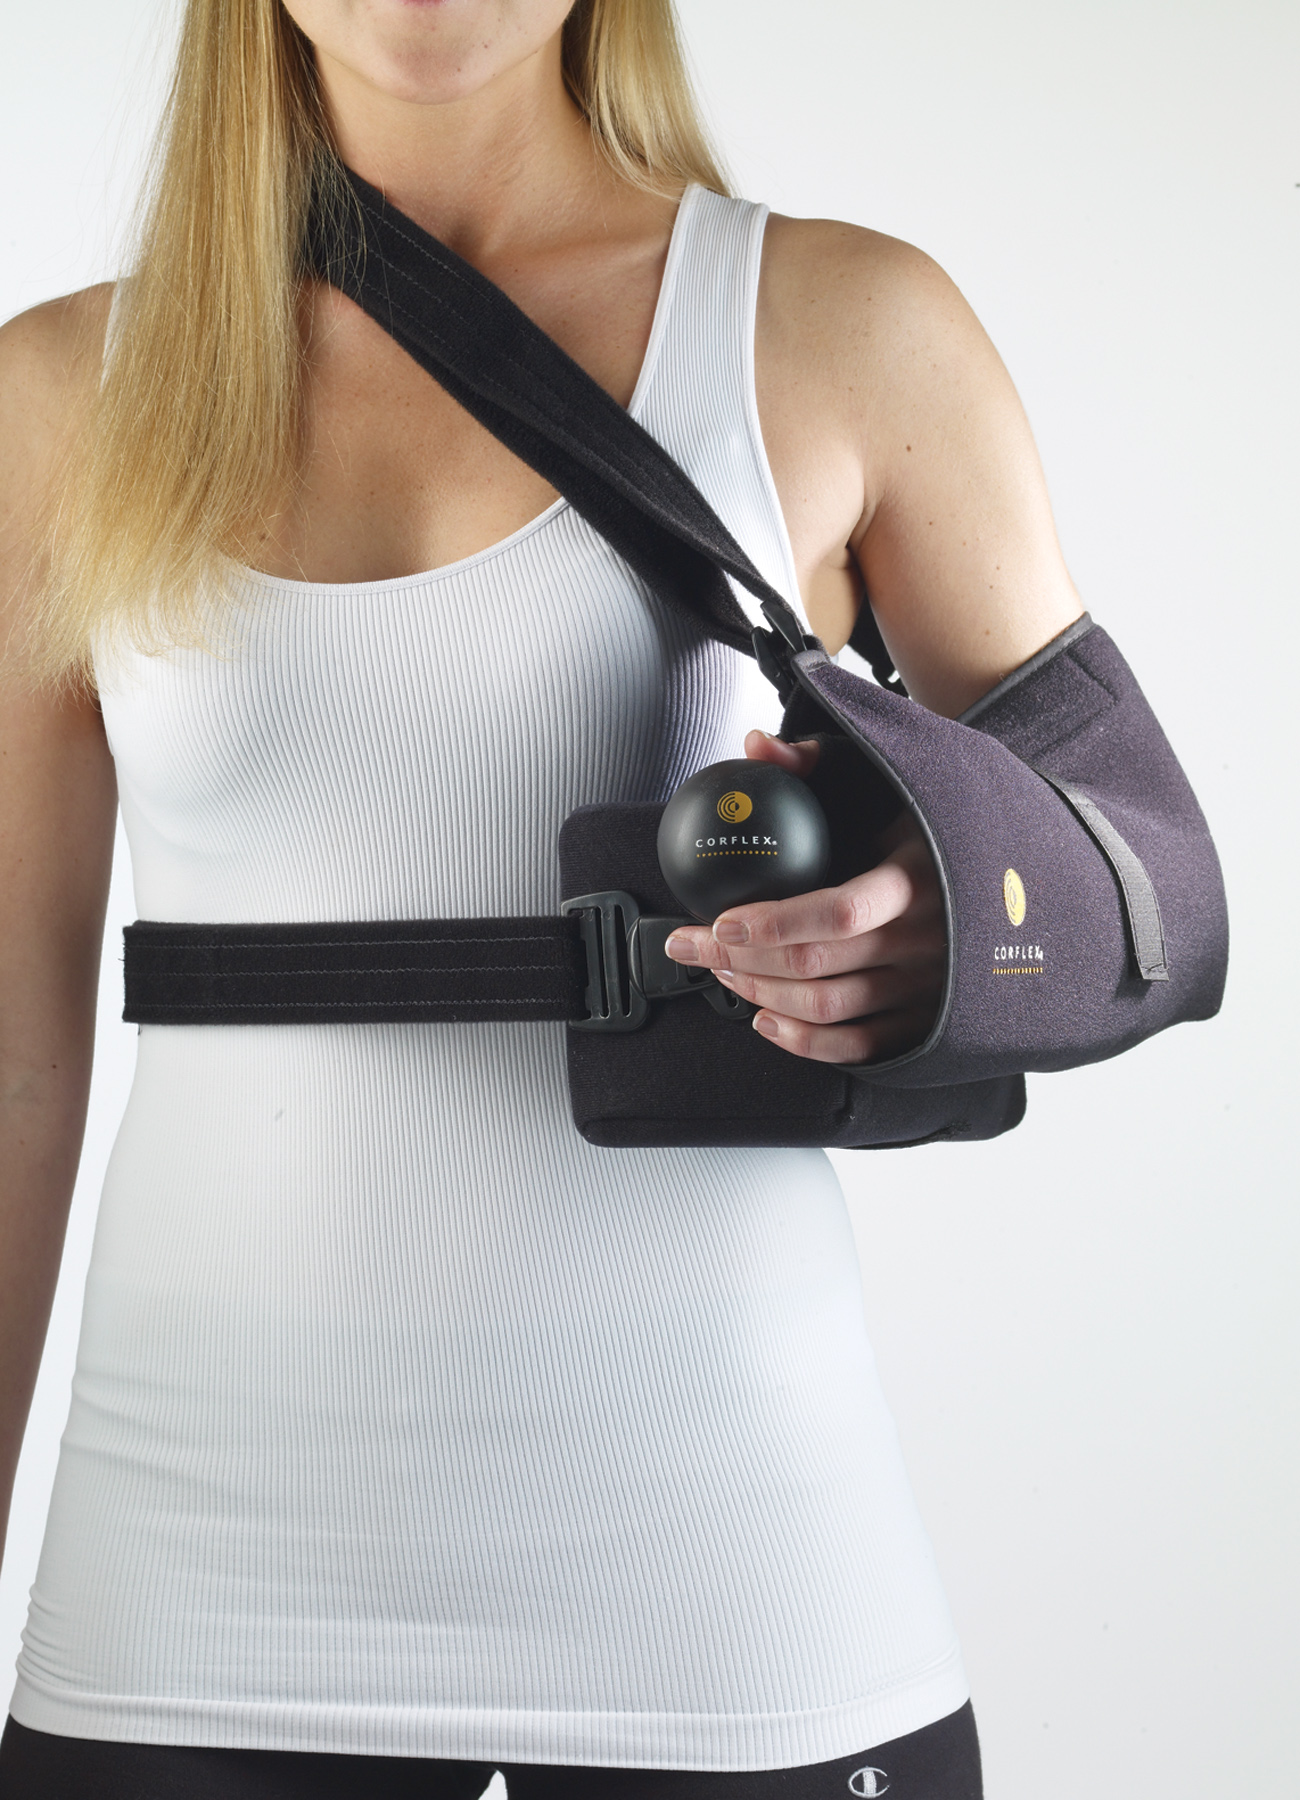 Shoulder Abduction Pillow w/Sling